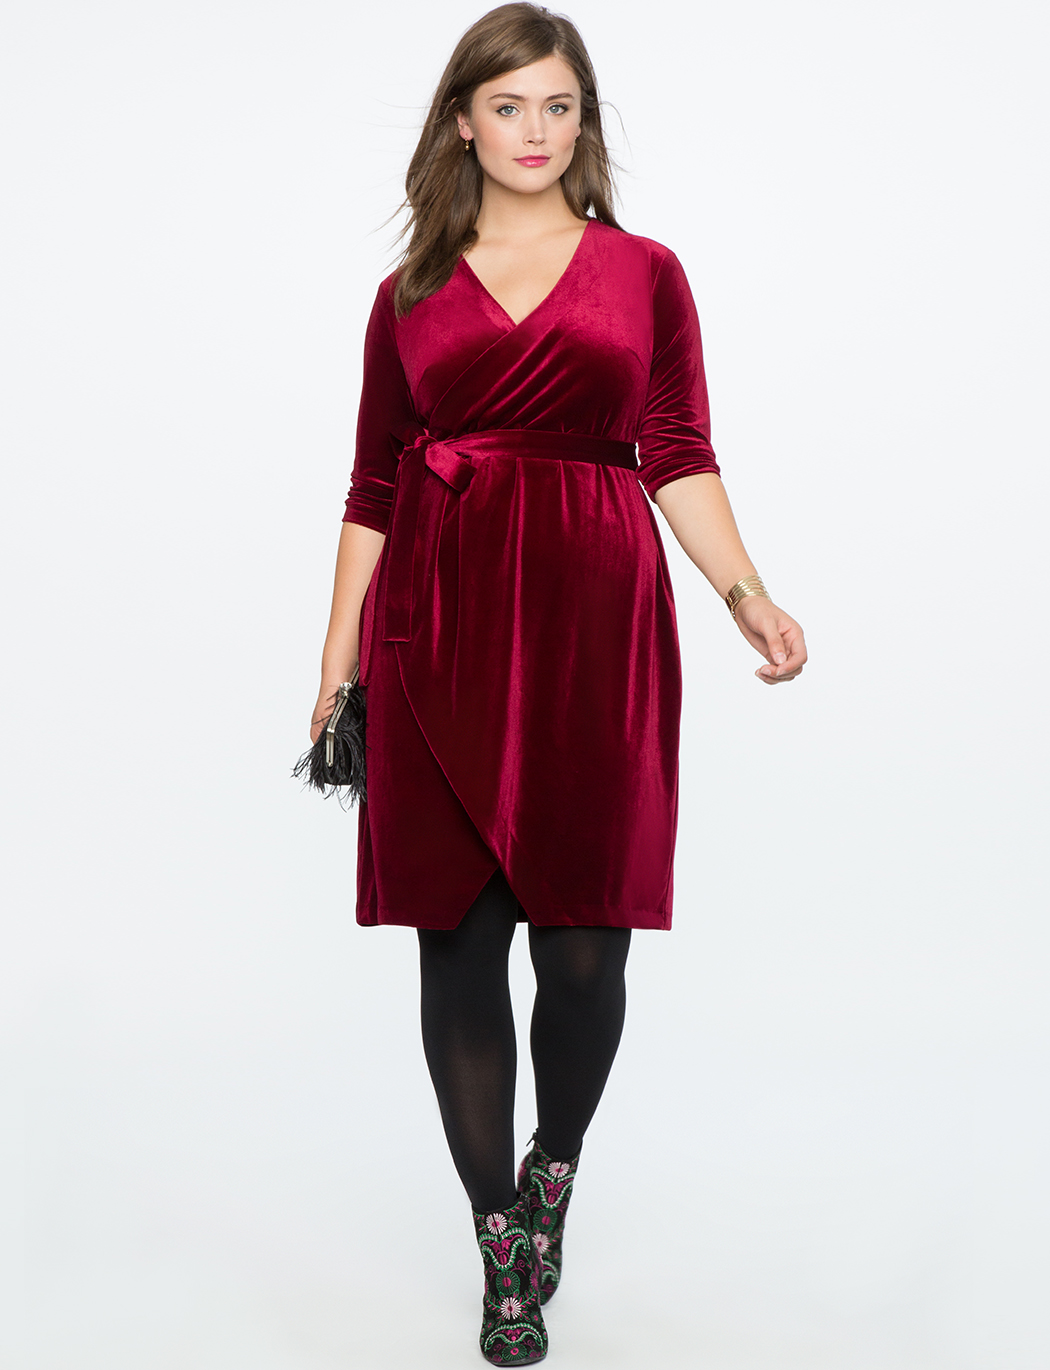 plus size burgundy dress 1 - 11 ways to wear a burgundy plus size dress